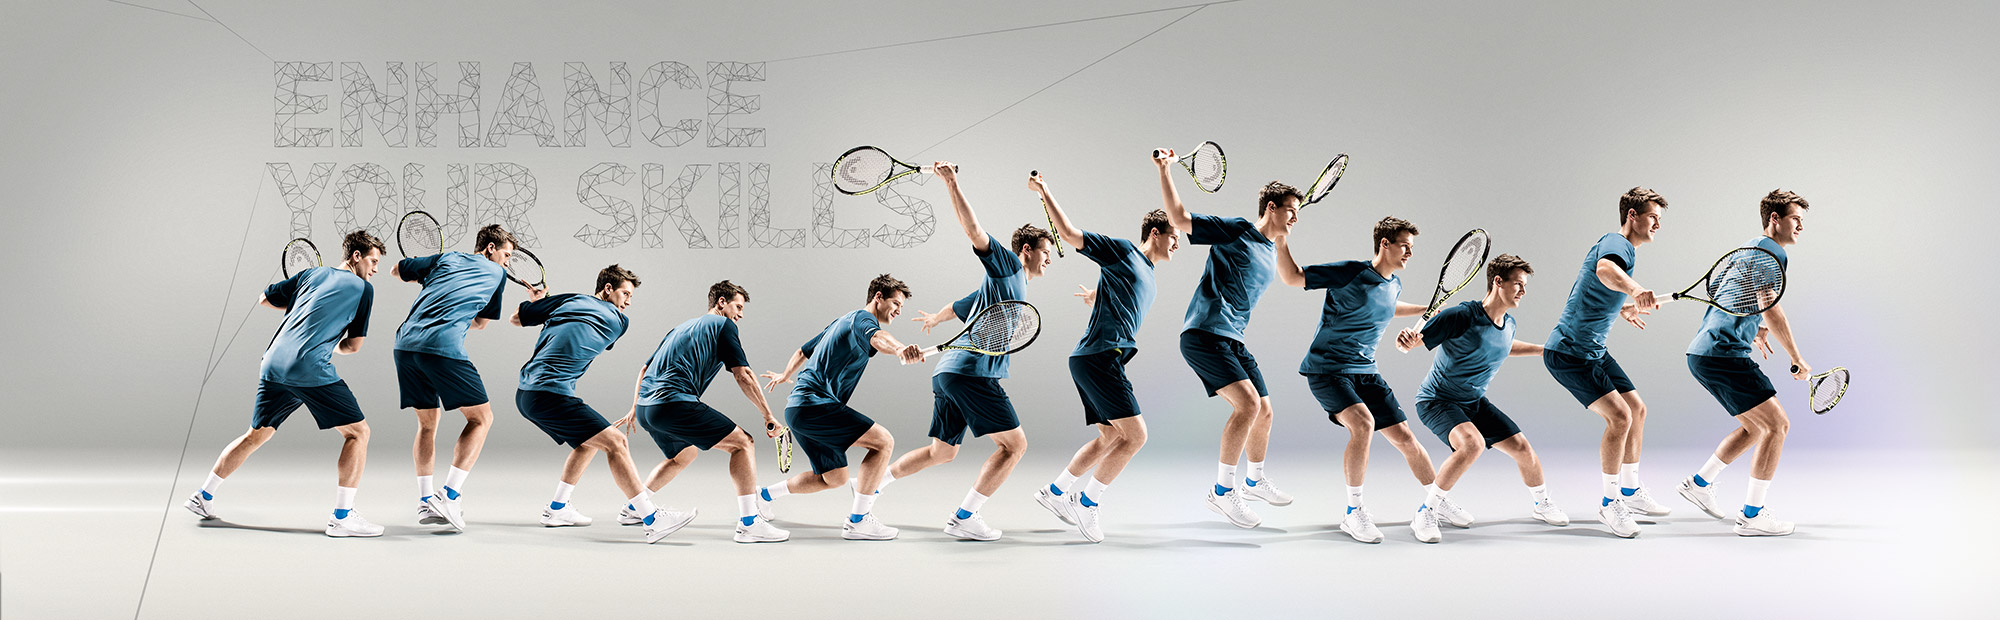 Tennis_Sequenz_SockeWeissProLOOK